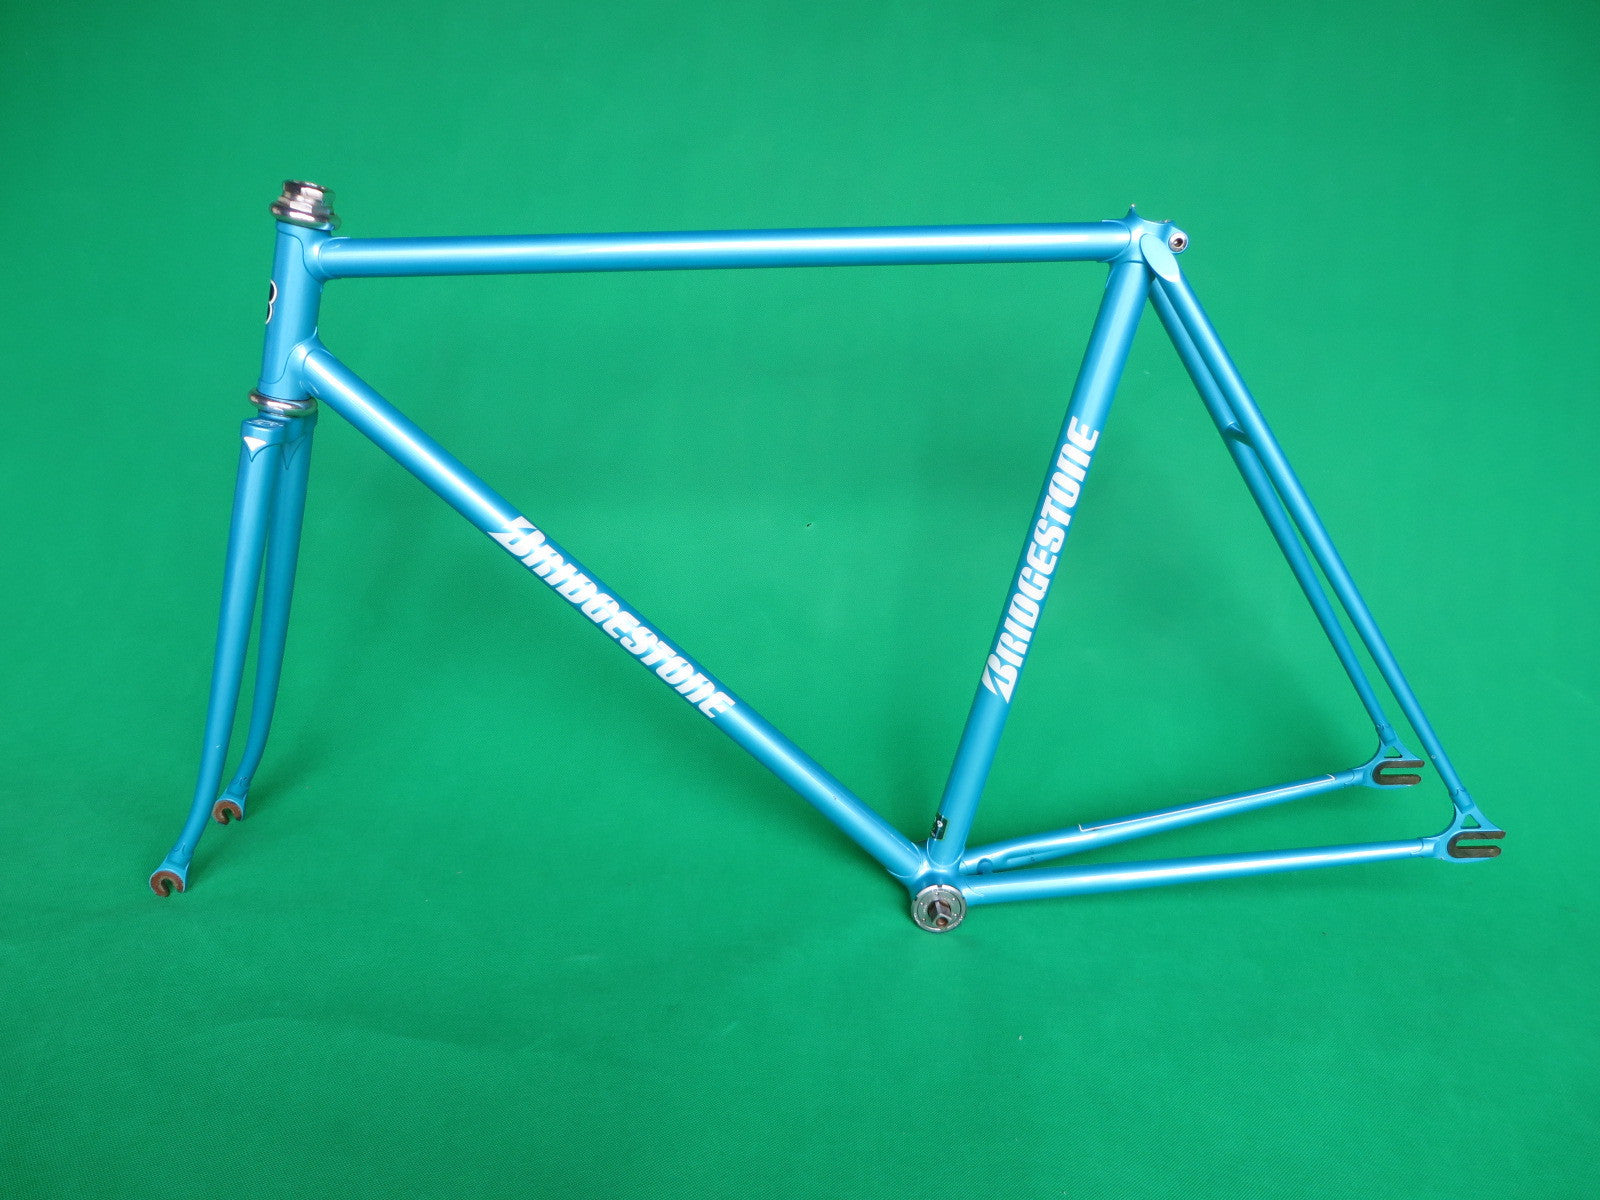 Bridgestone // Light Blue Metallic '99 // 53.5cm